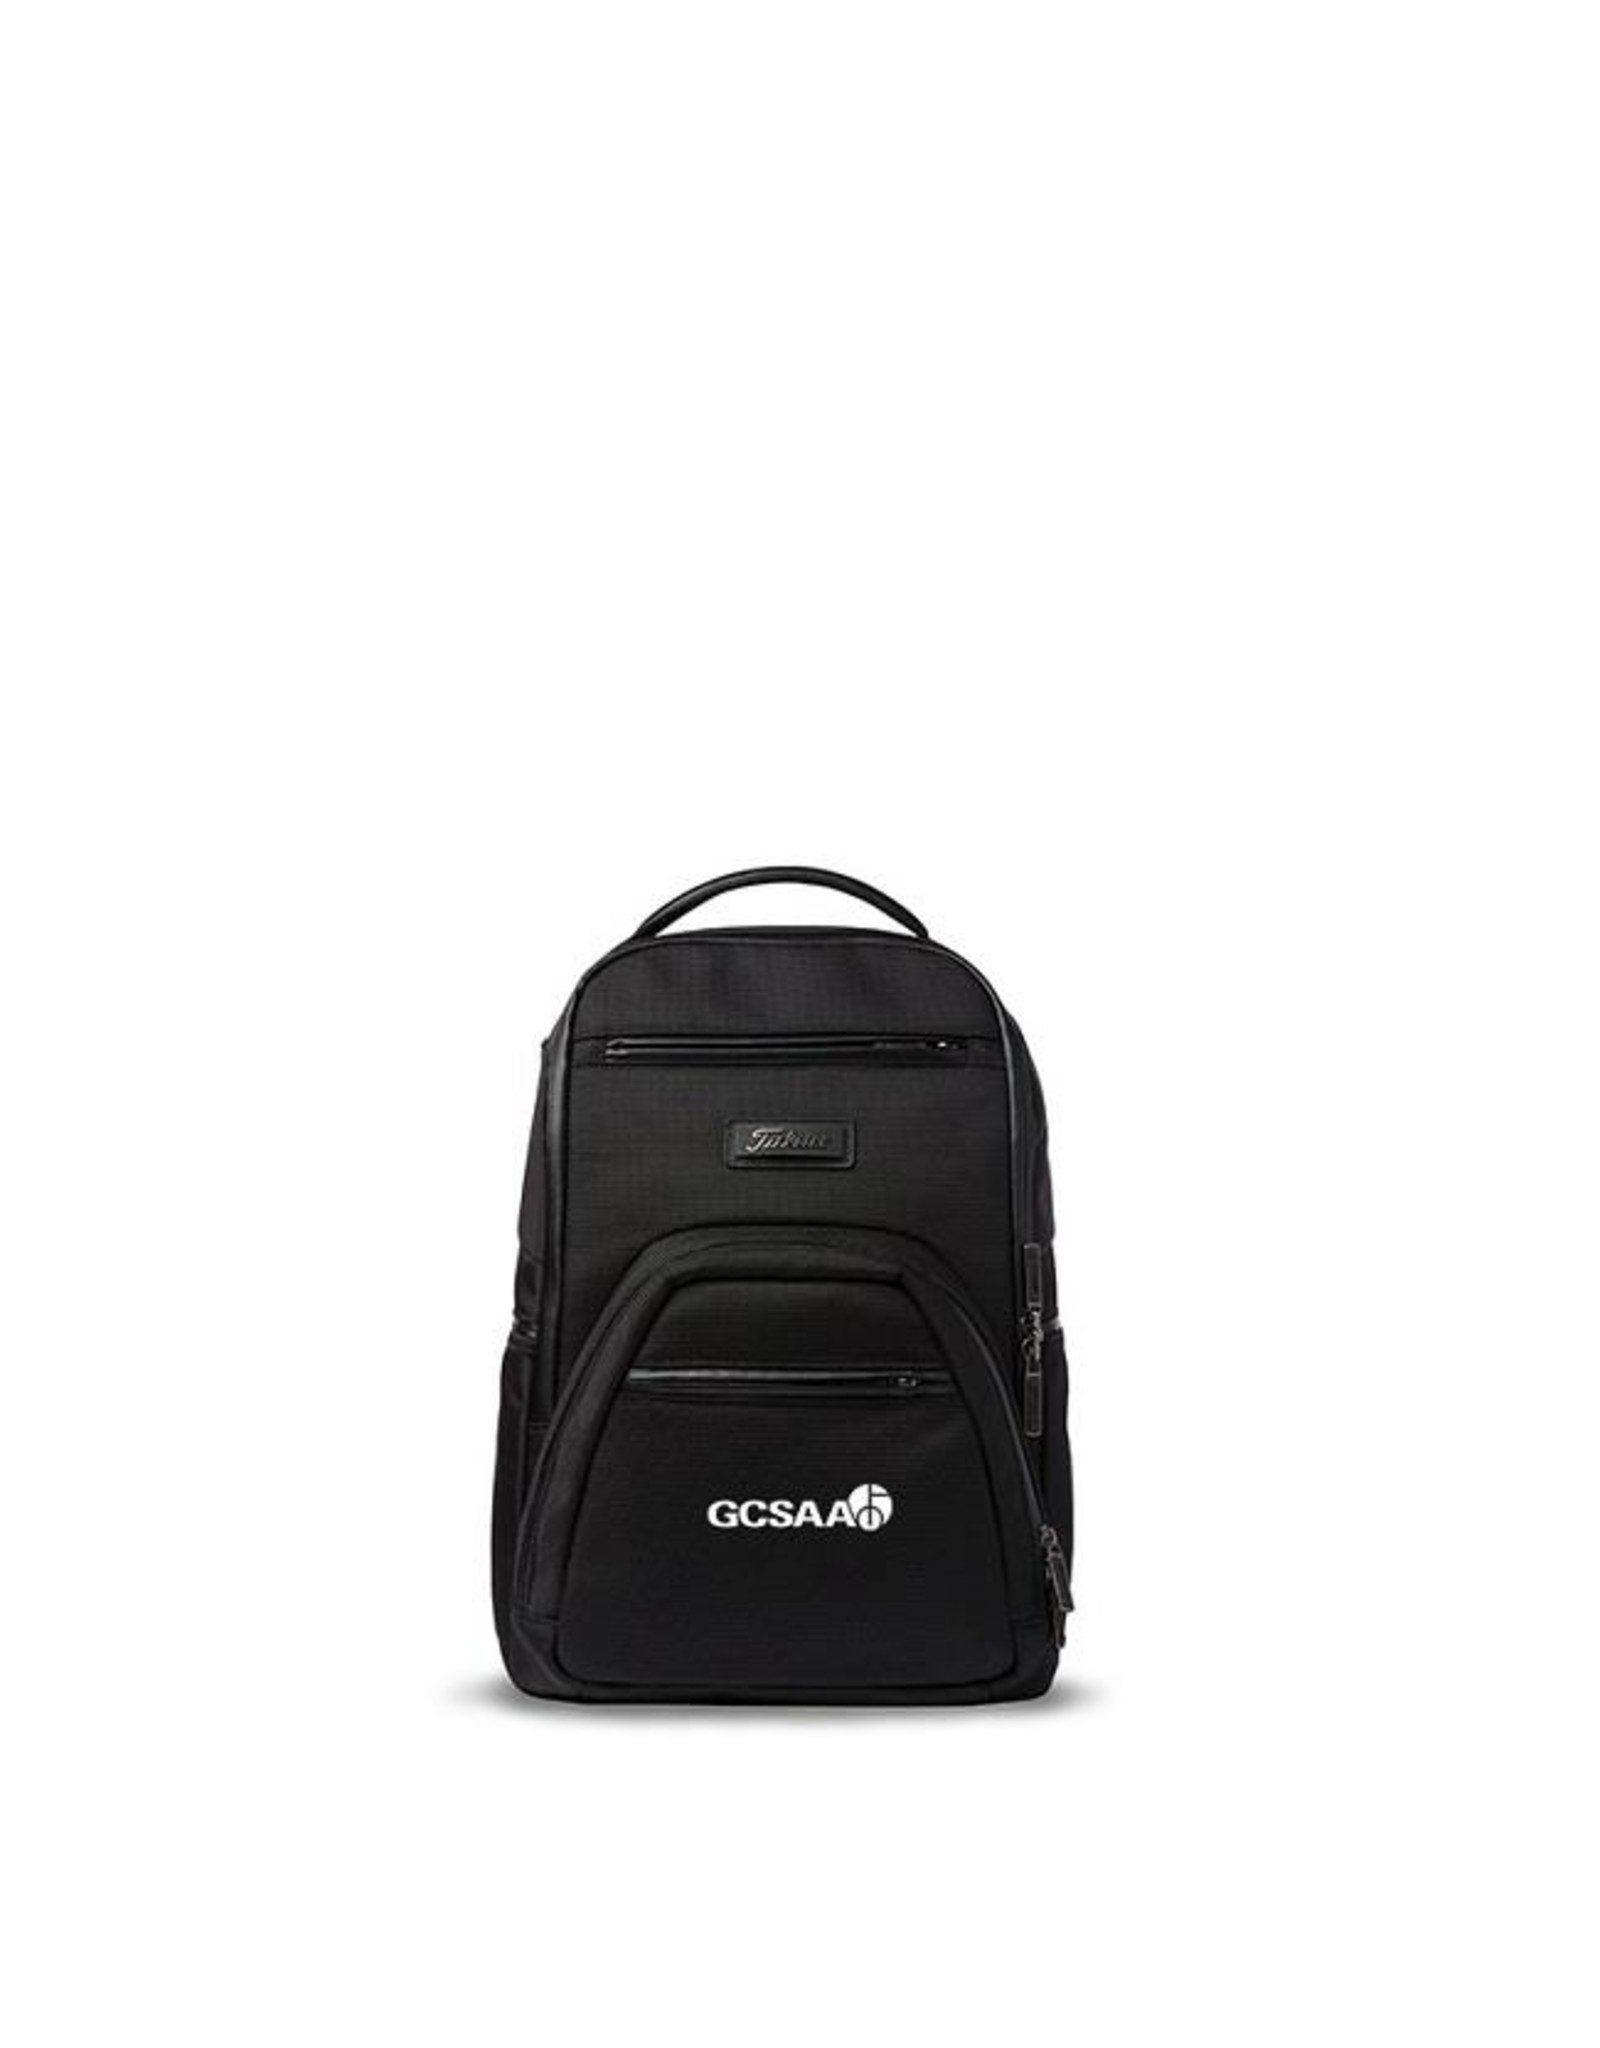 Titleist Titleist Pro Series Backpack